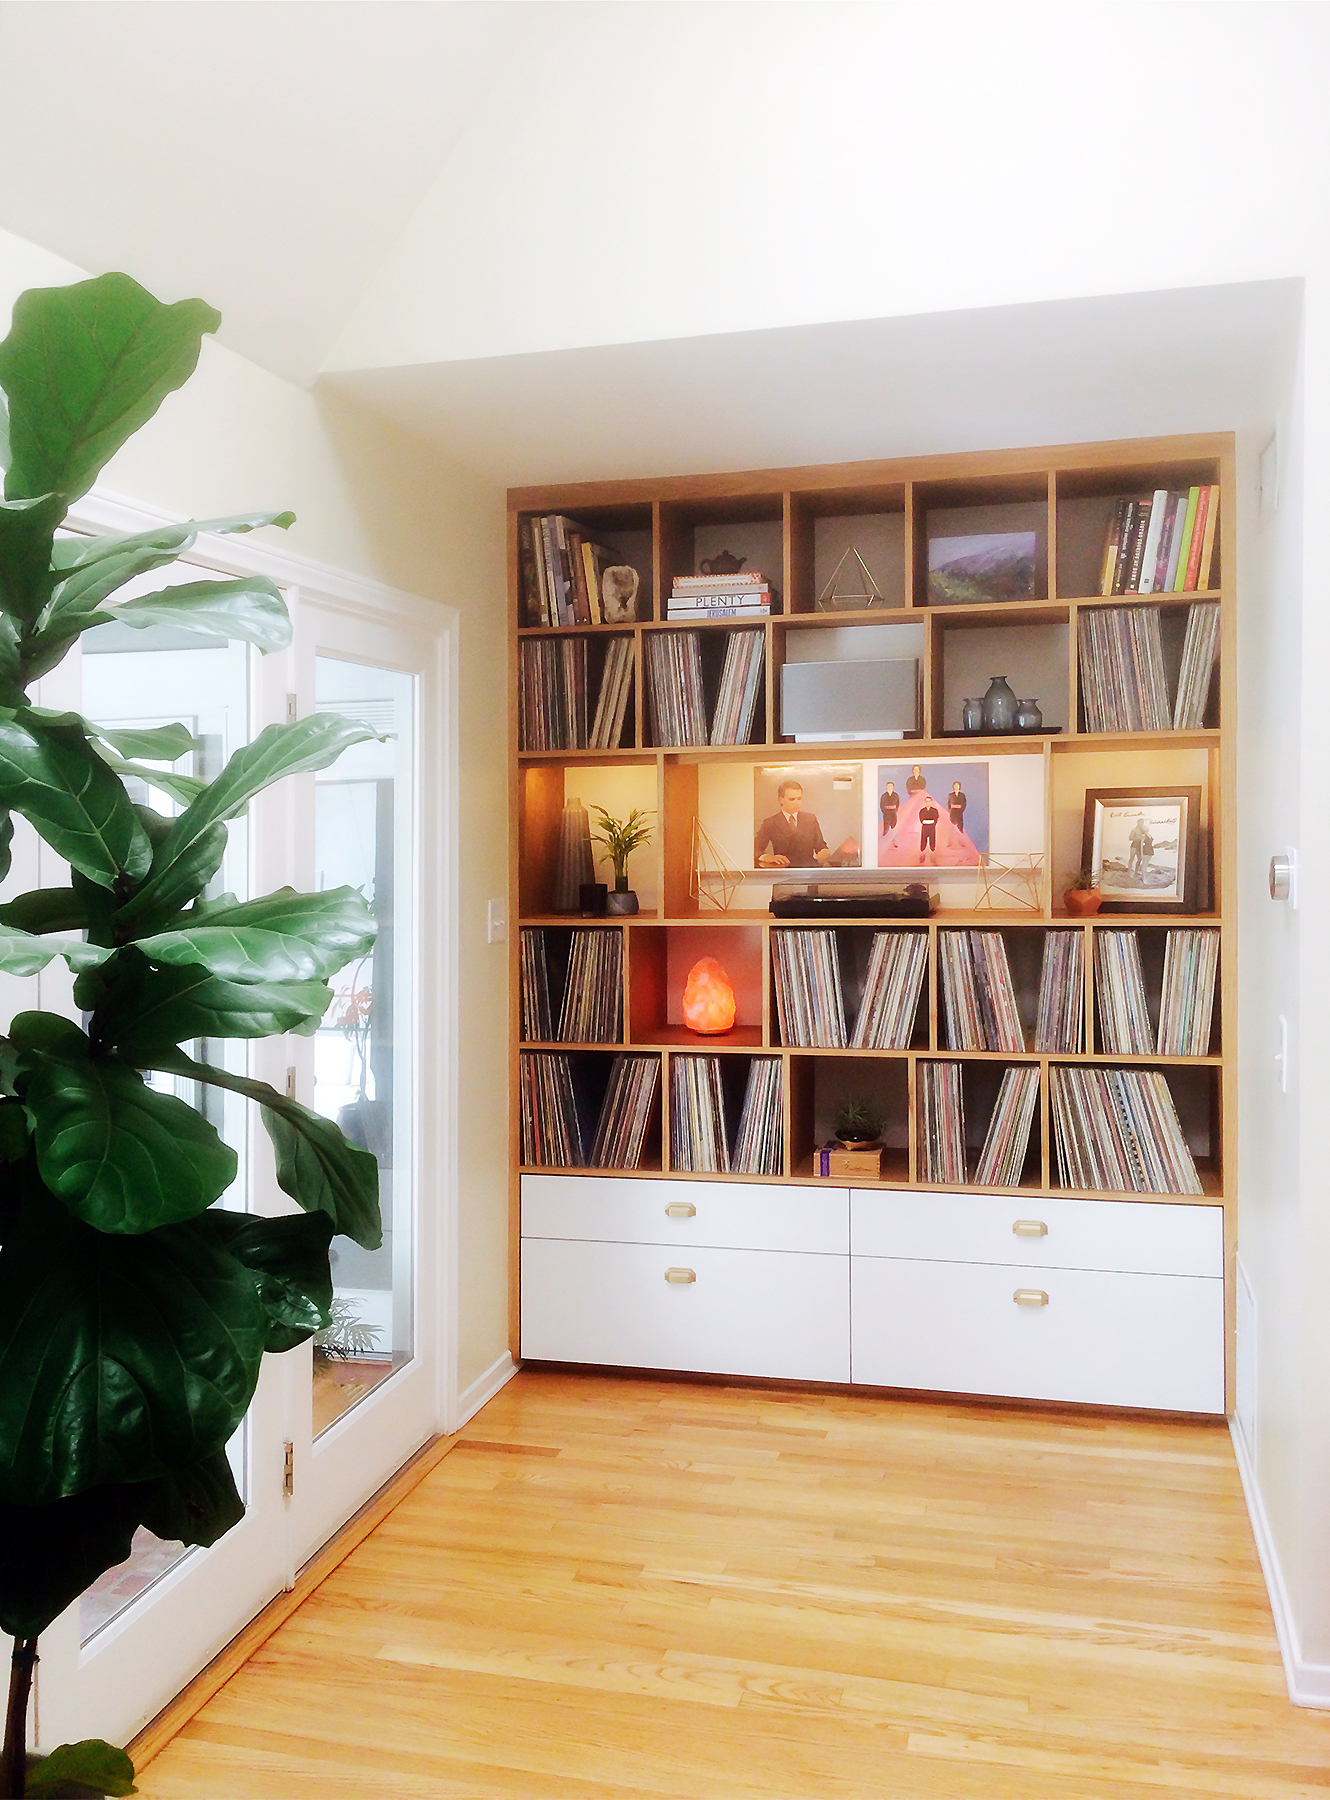 Record Storage Cabinet Room.jpg